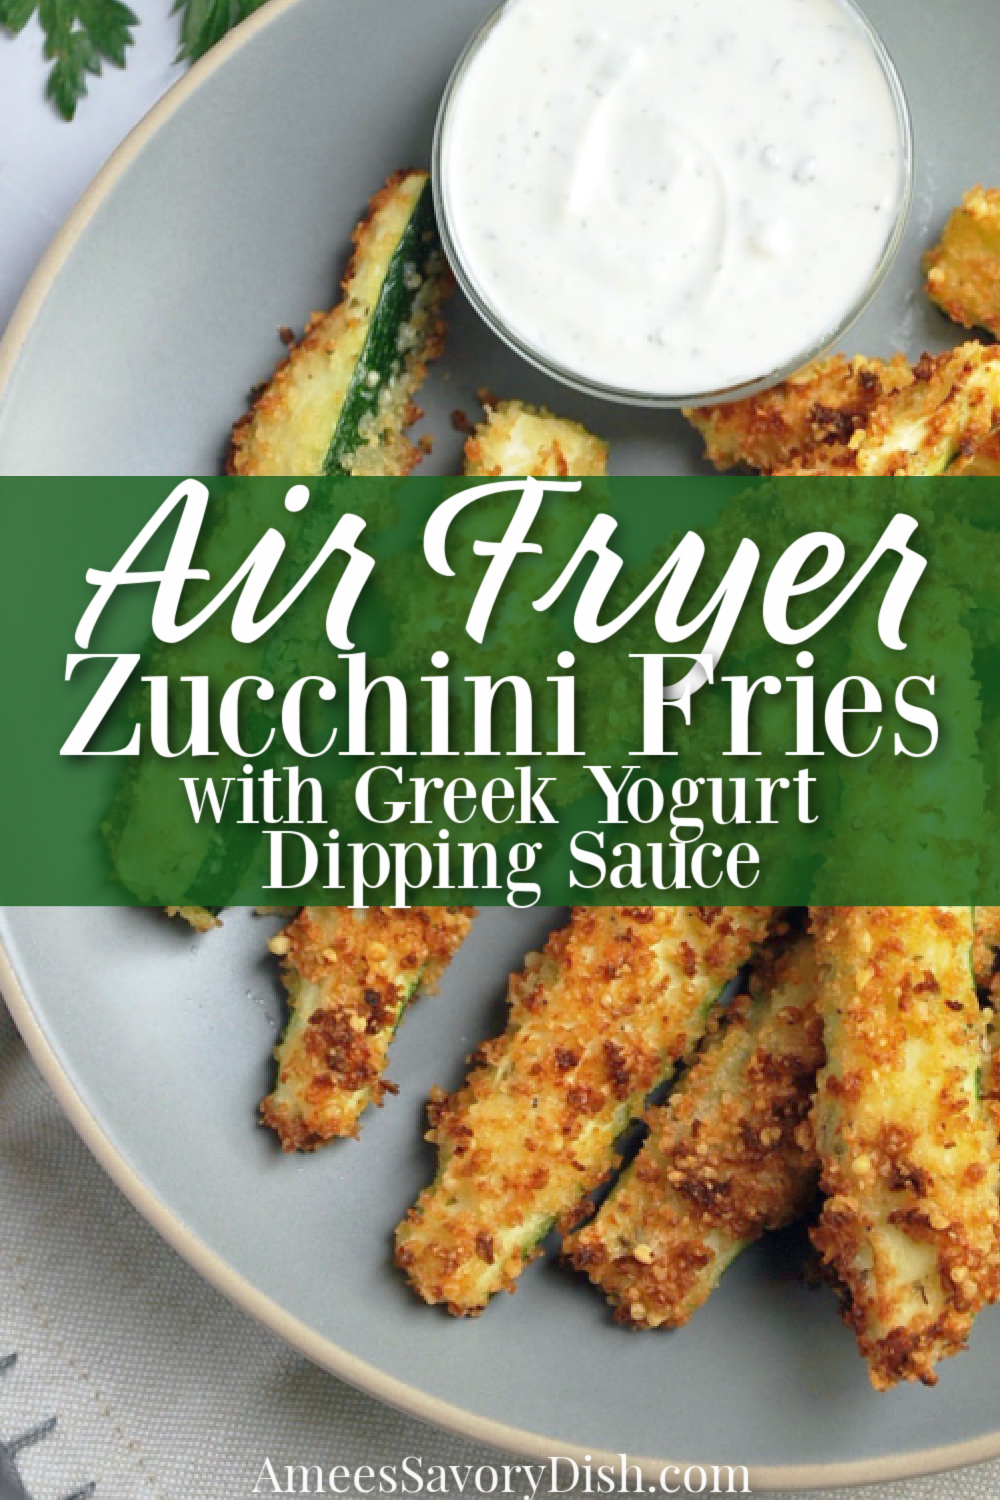 Perfectly crisp and flavorful air fryer zucchini fries served with a simple Greek yogurt dipping sauce. A tasty way to use up summer zucchini! #zucchinifries #zucchinirecipe #airfryerzucchini #airfryerrecipes #sidedishrecipe #summersidedish via @Ameessavorydish